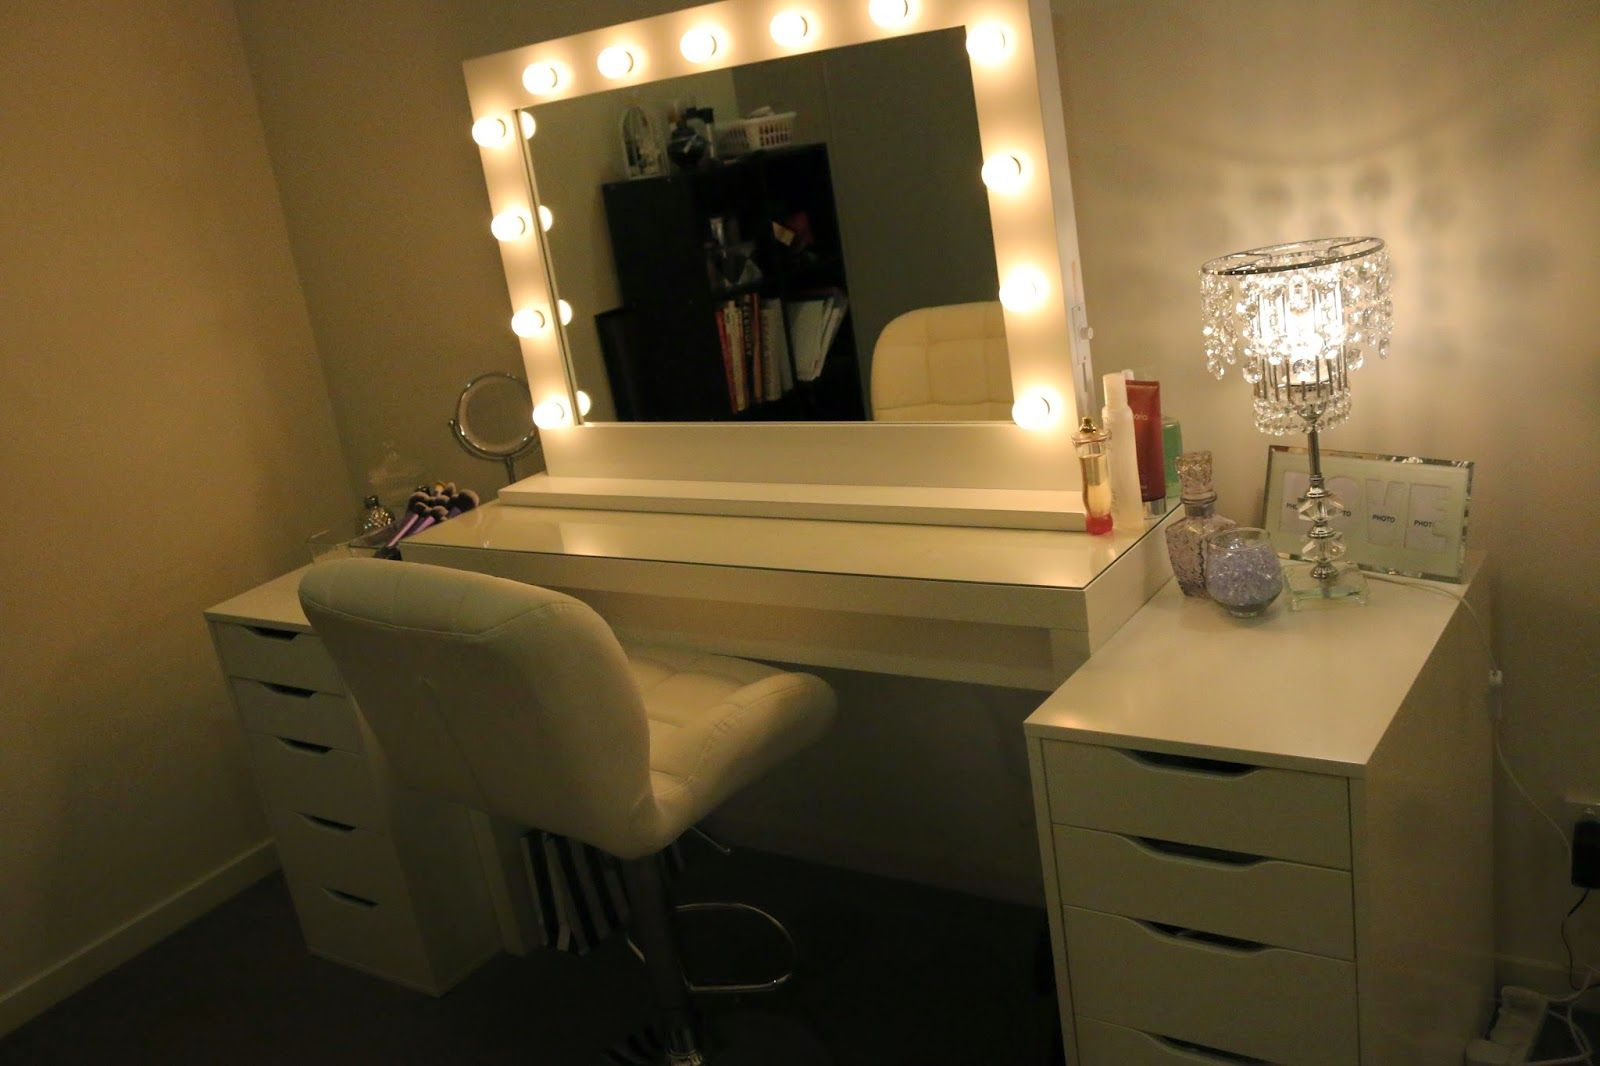 Ikea Vanity Mirror Lights On Both Sides Of A Mirror With Images